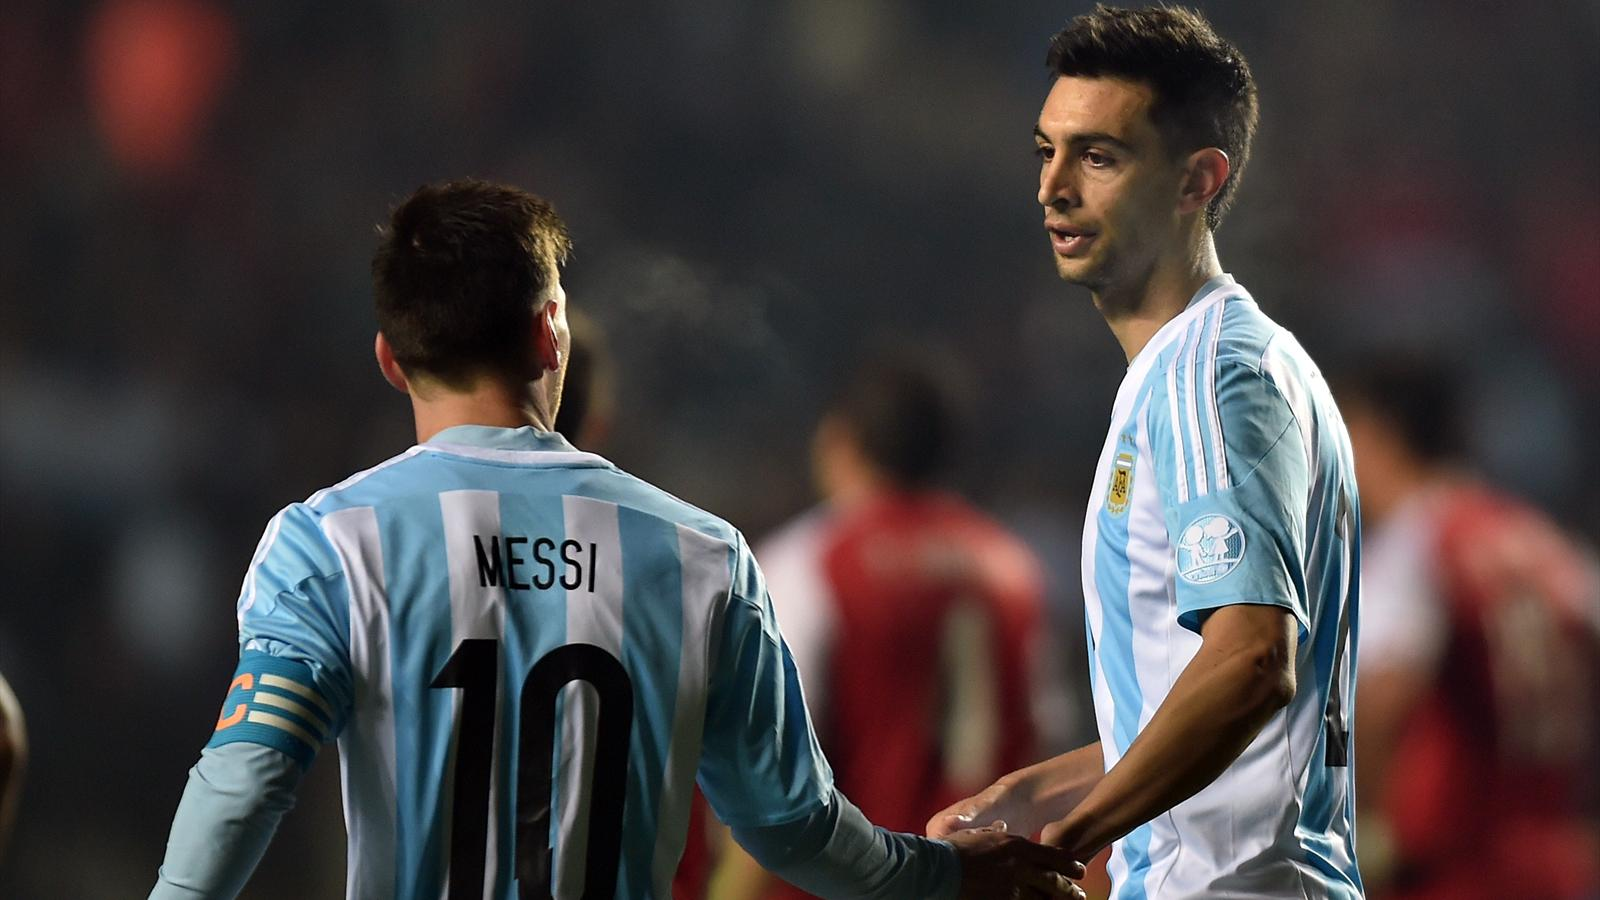 Argentina's midfielder Javier Pastore (R) celebrates with teammate Lionel Messi after scoring against Paraguay during their Copa America semi-final football match in Concepcion, Chile